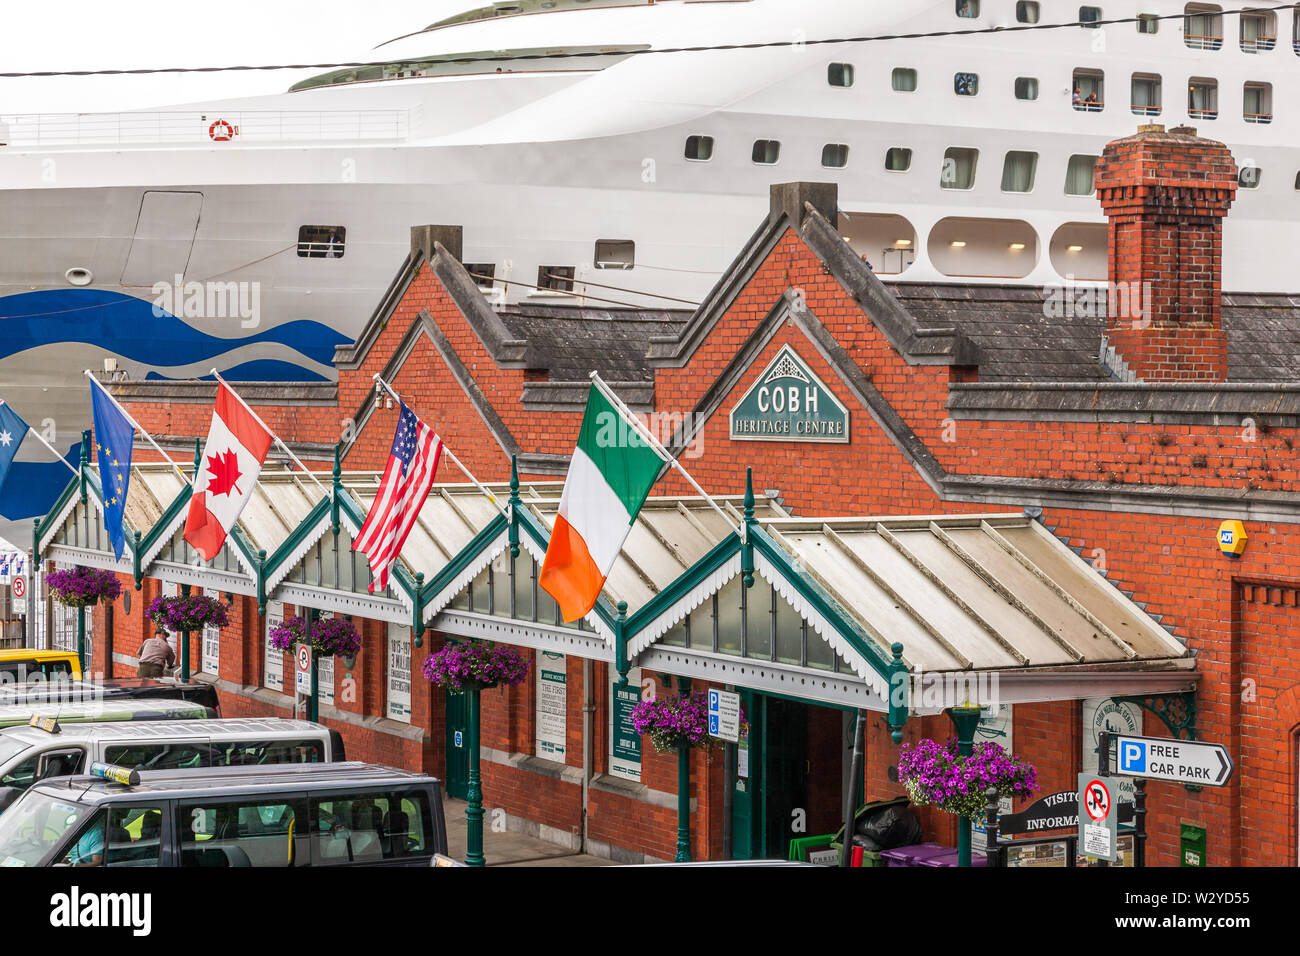 Cobh, Cork, Ireland. 11th July, 2019. The heritage centre on the sea front with the cruise ship Sea Princess docked at the quayside in Cobh, Co. Cork, Ireland. Credit: David Creedon/Alamy Live News Stock Photo